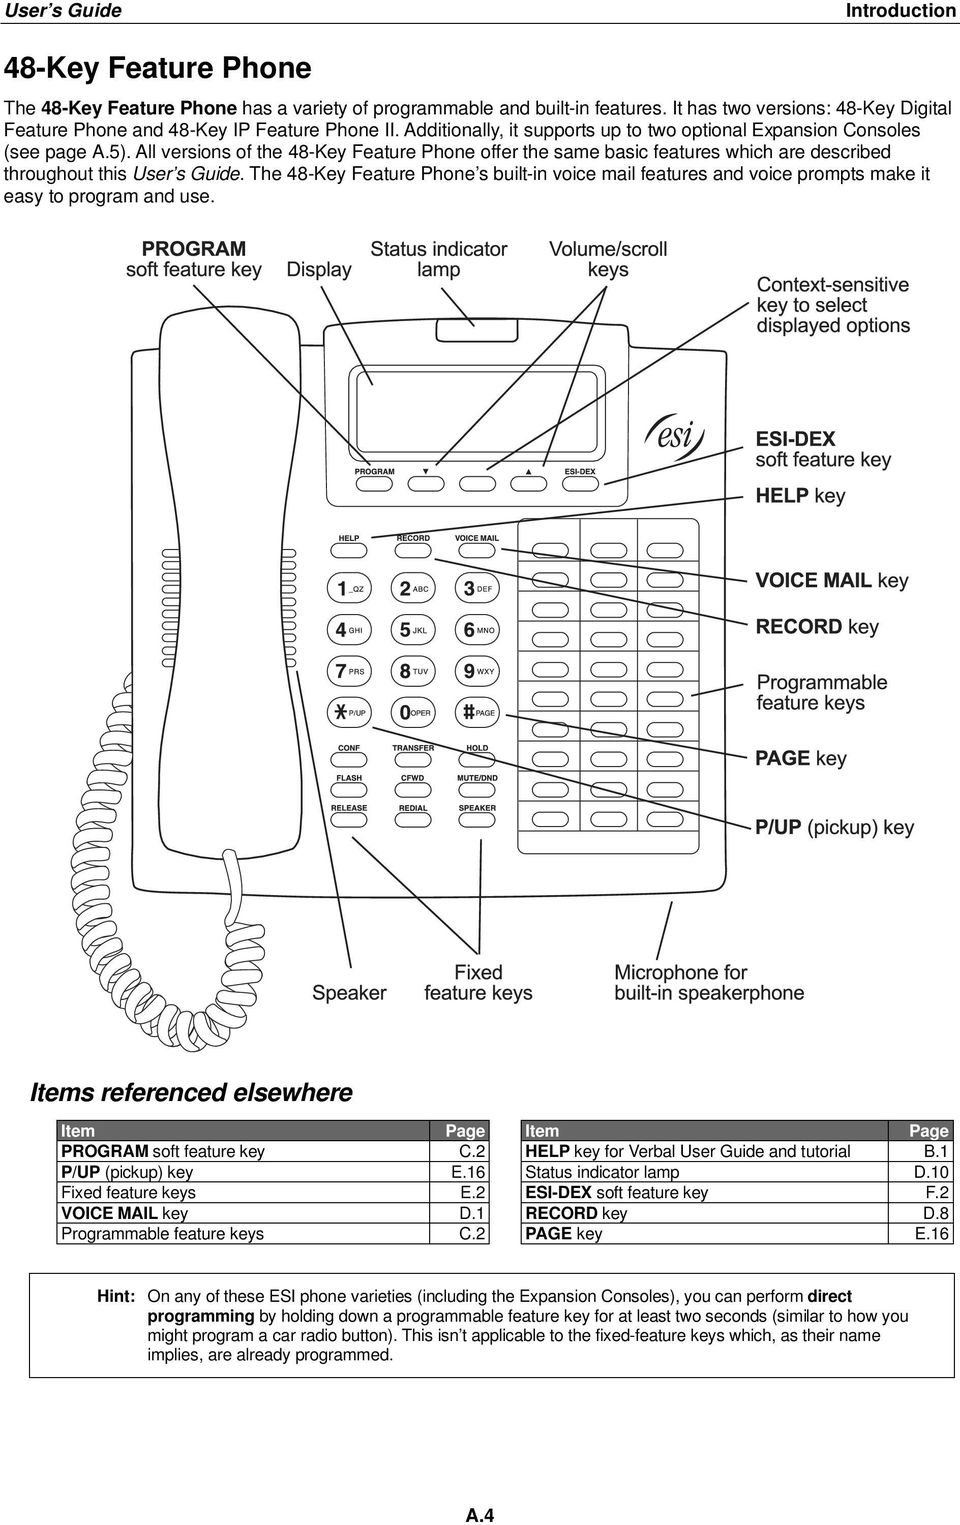 The 48-Key Feature Phone s built-in voice mail features and voice prompts make it easy to program and use. Items referenced elsewhere Item Page Item Page PROGRAM soft feature key C.